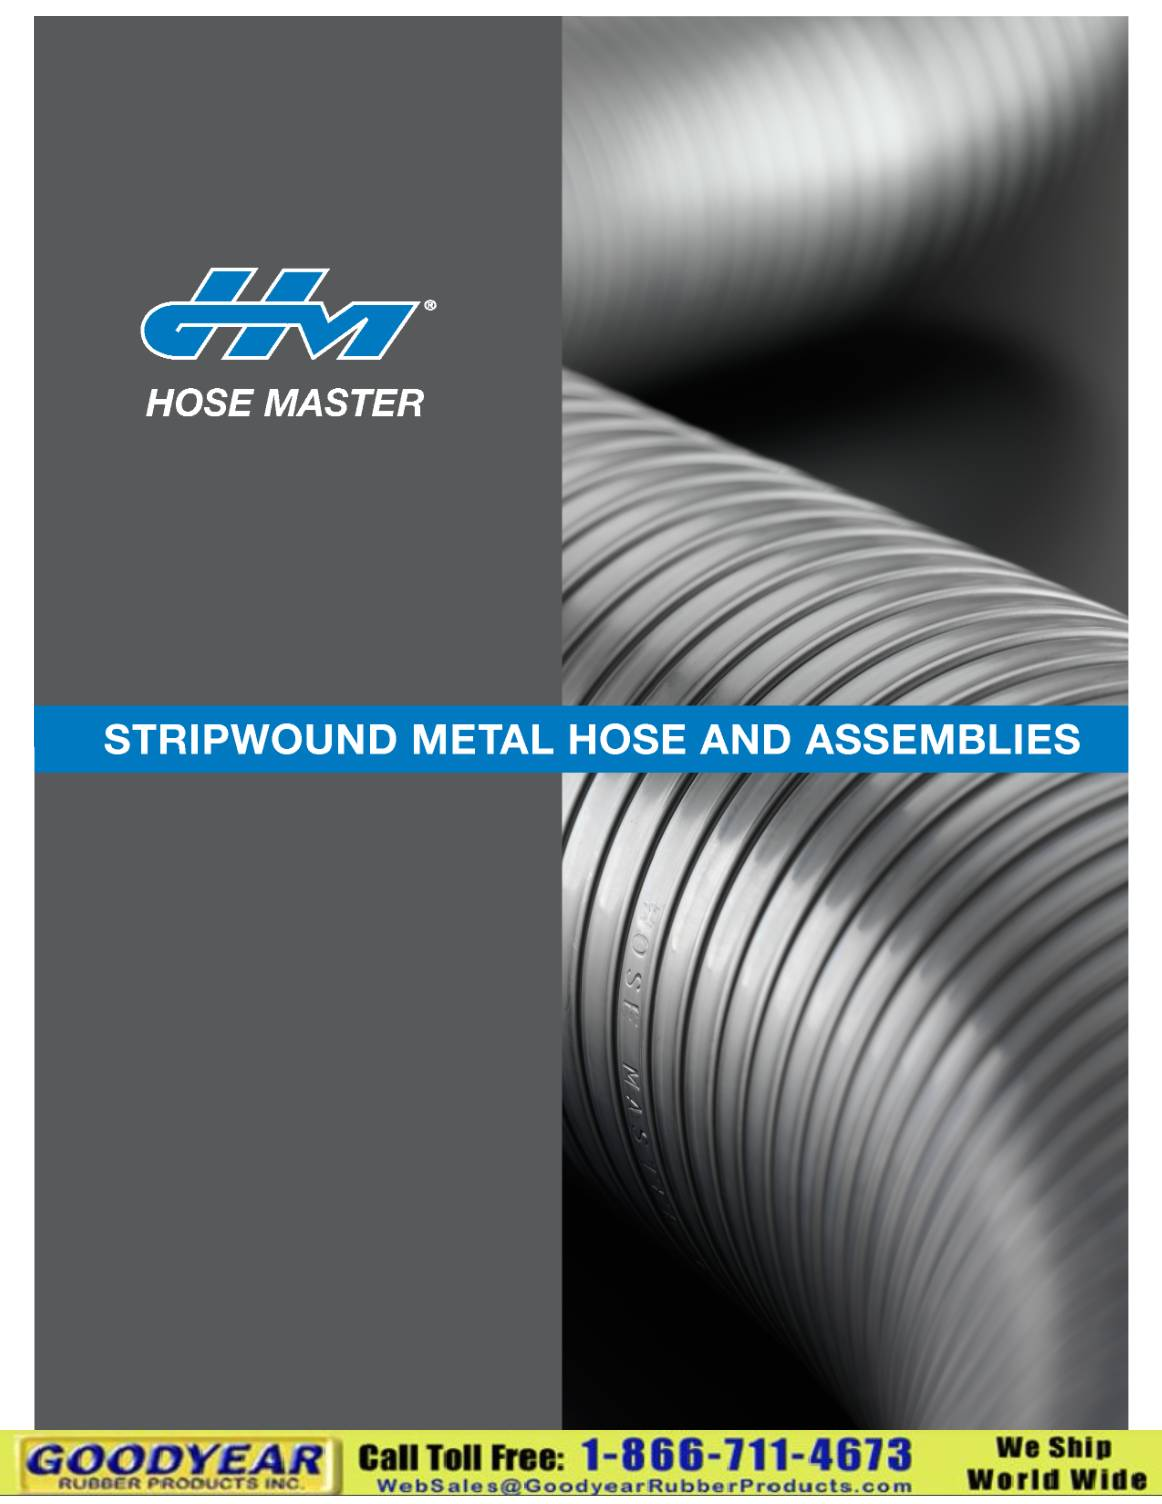 Hose Master Stripwound Metal Hose